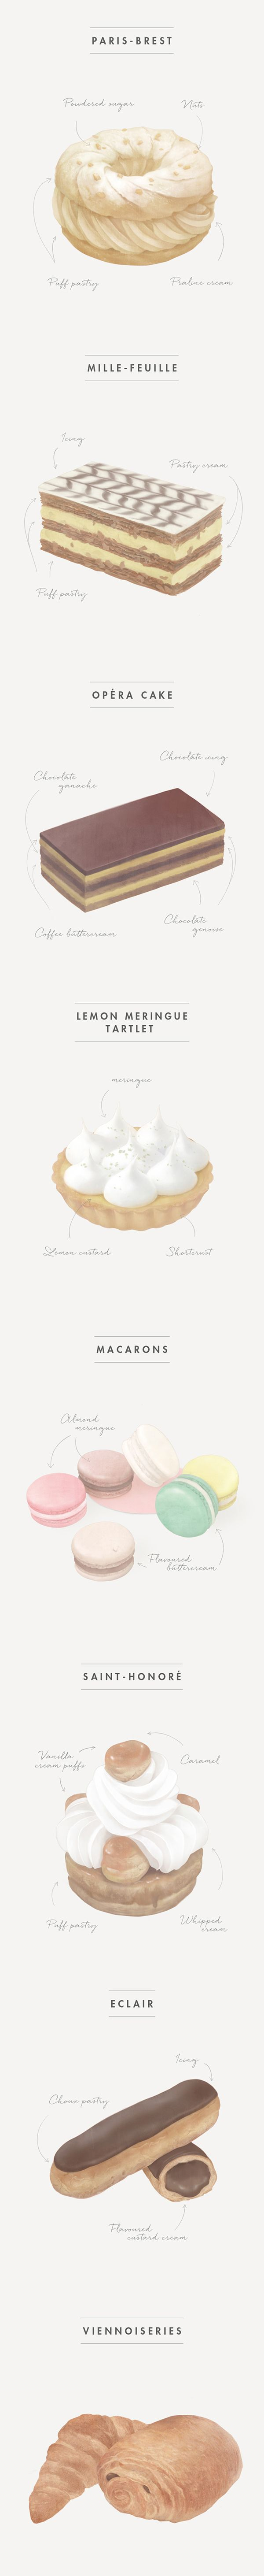 Paris Pastry Shops on Illustration Served